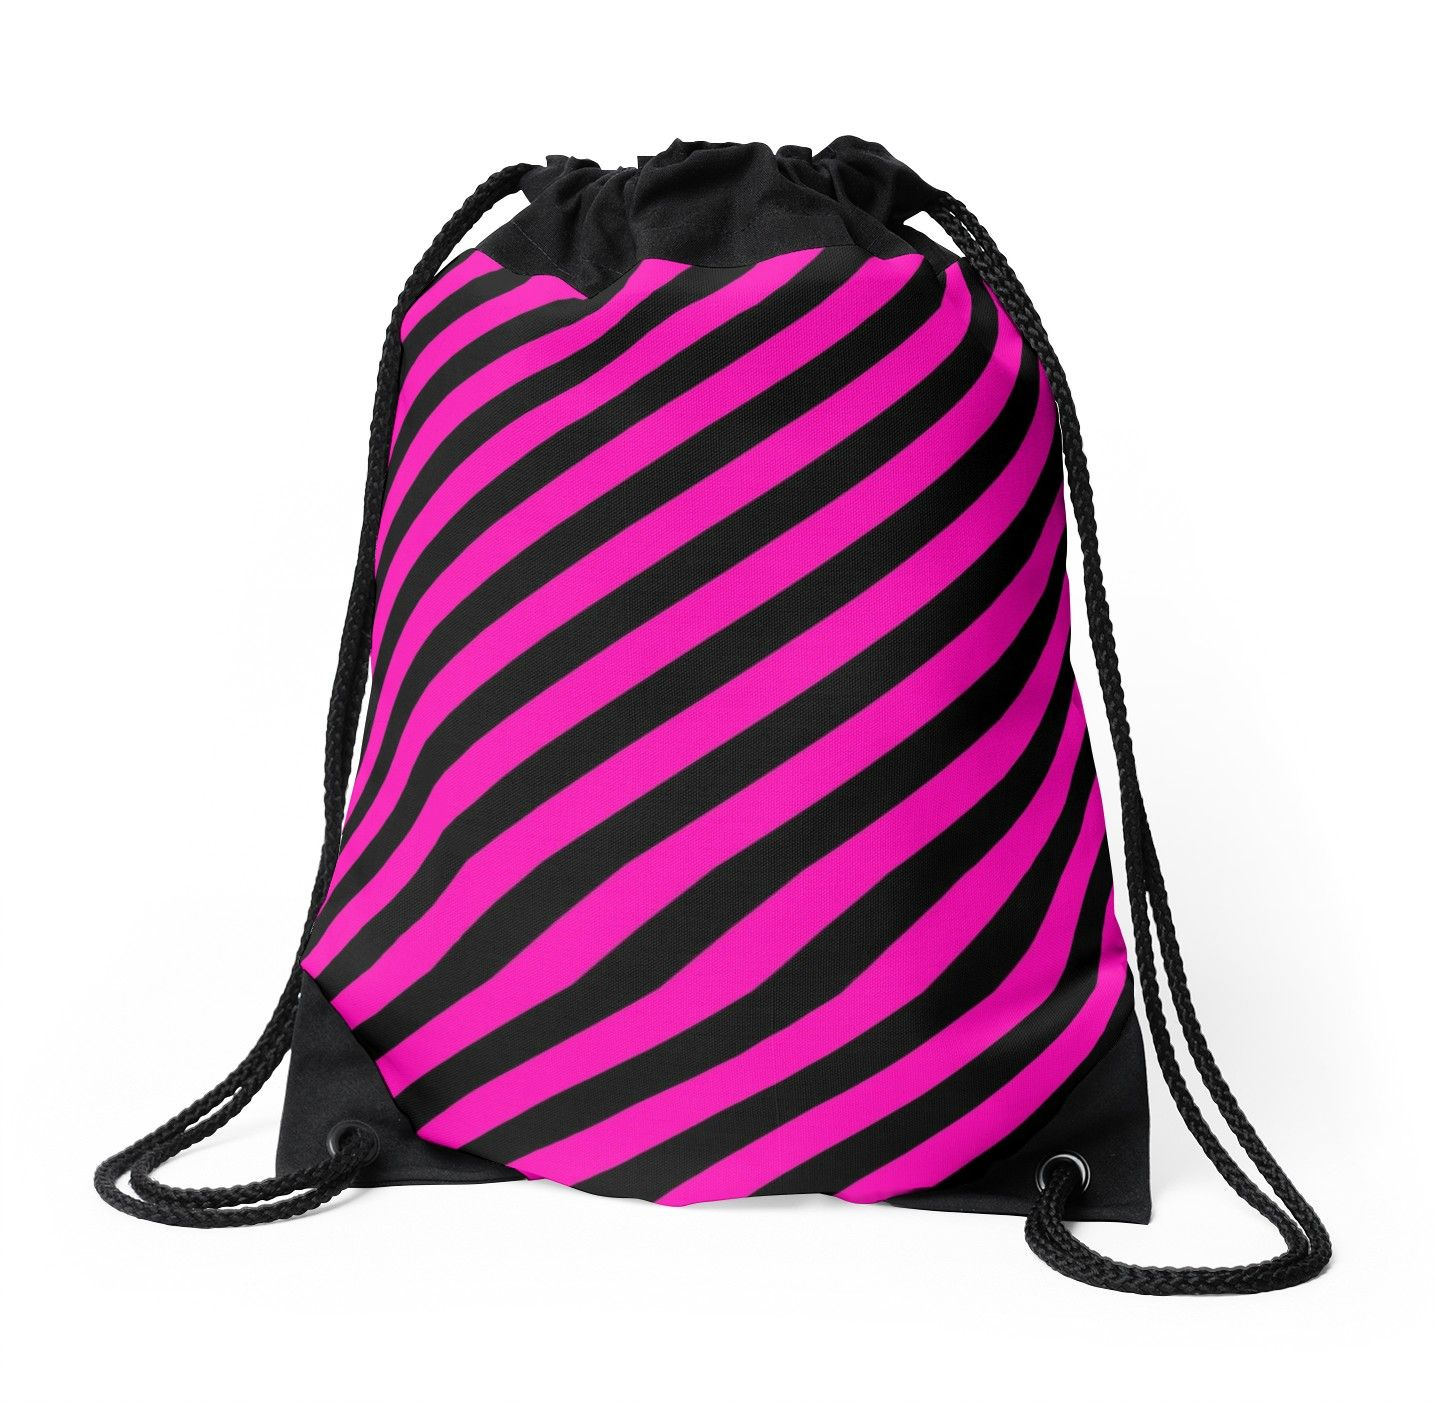 Bright Hot Neon Pink and Black Candy Cane Stripes Custom